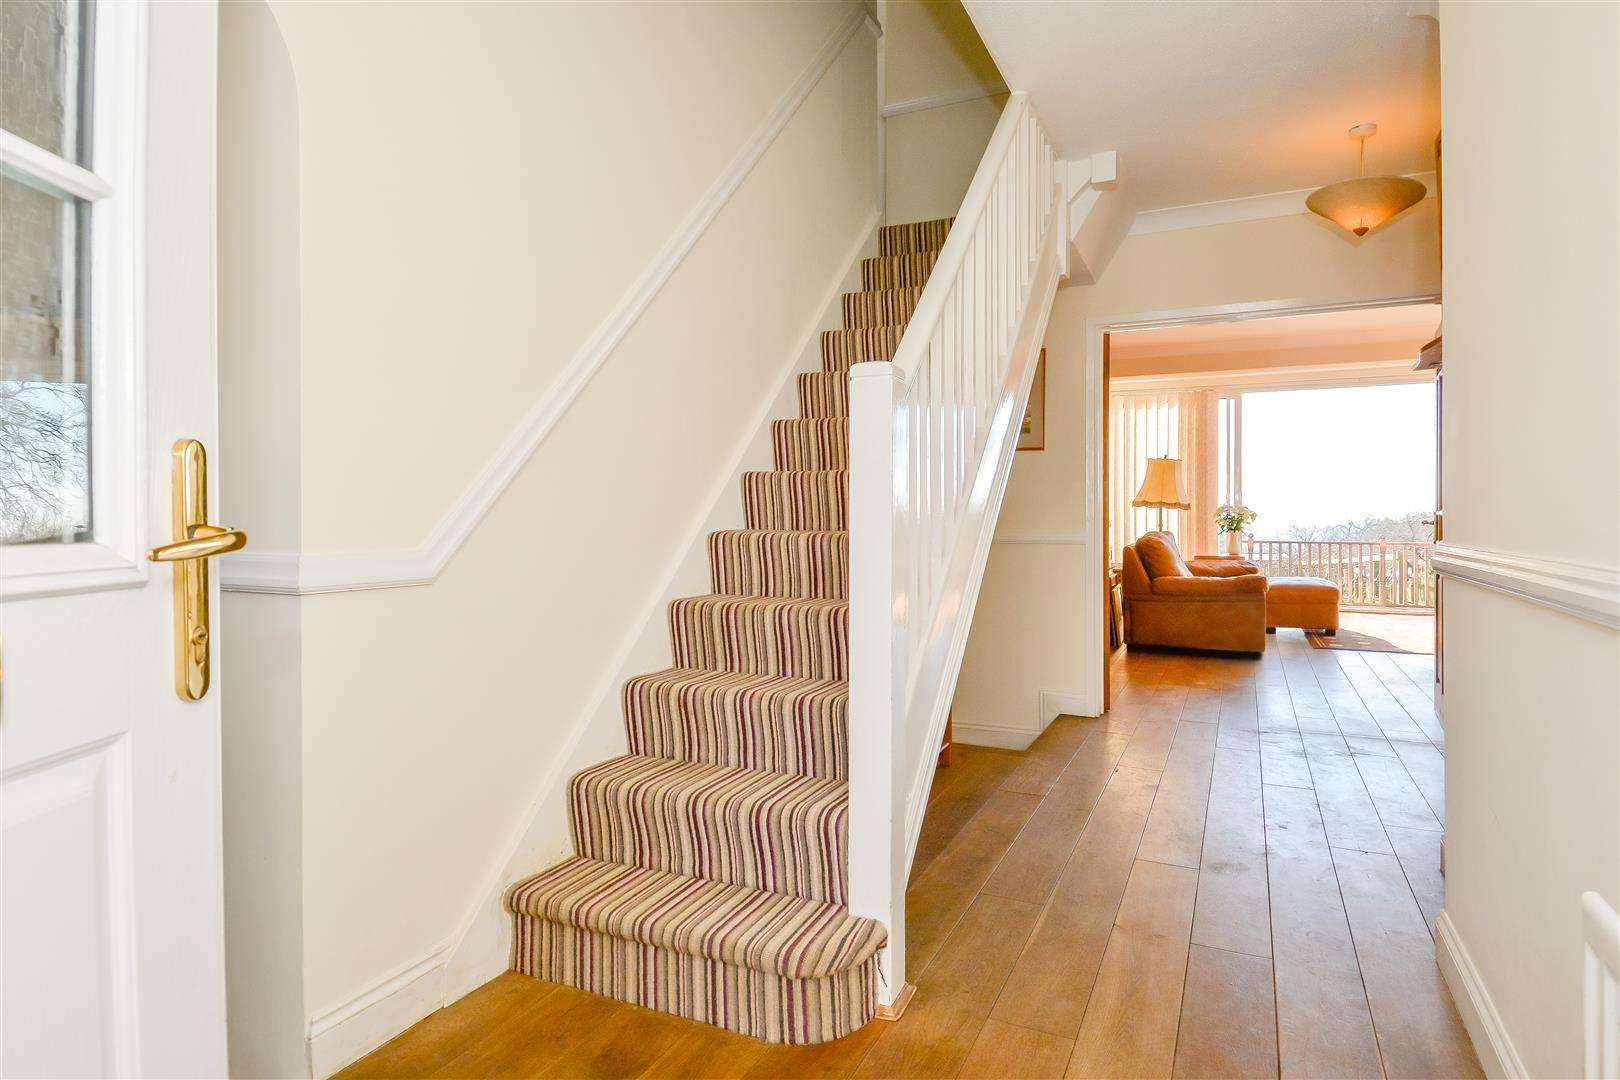 4 bed for sale in Merry Hill Road, Bushey - (Property Image 4)